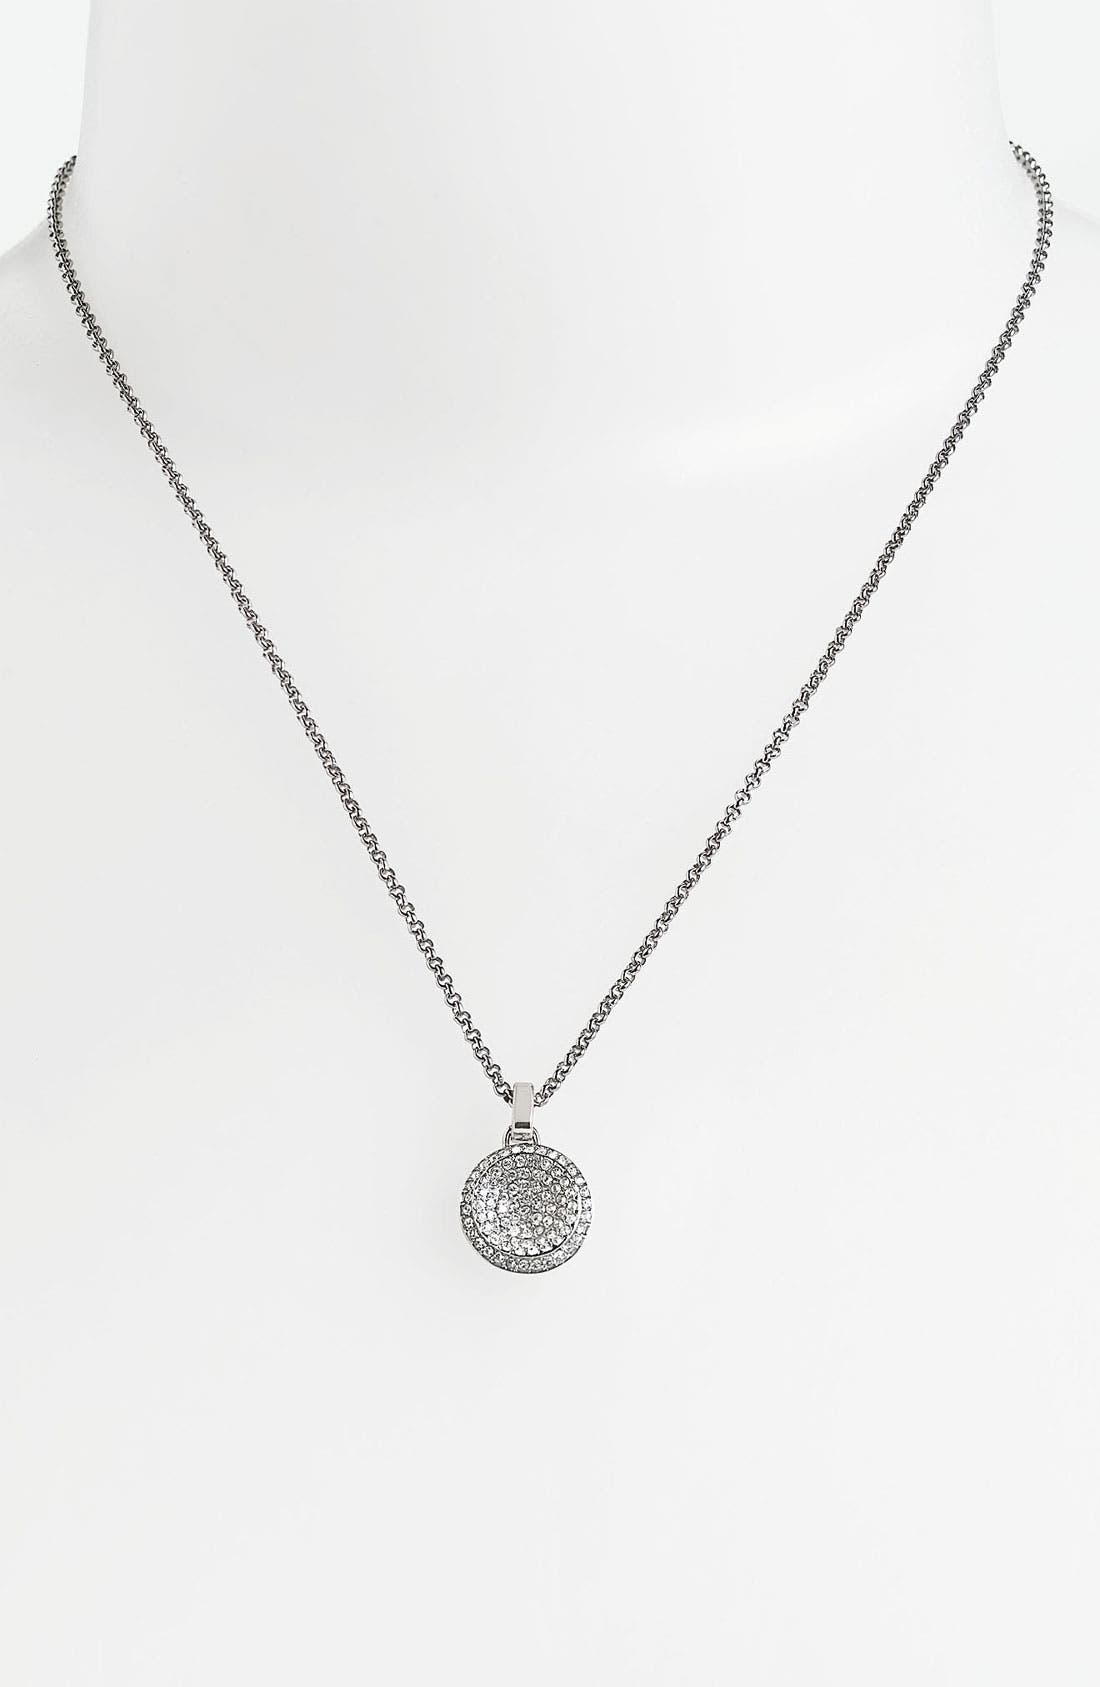 Alternate Image 1 Selected - Michael Kors Pendant Necklace